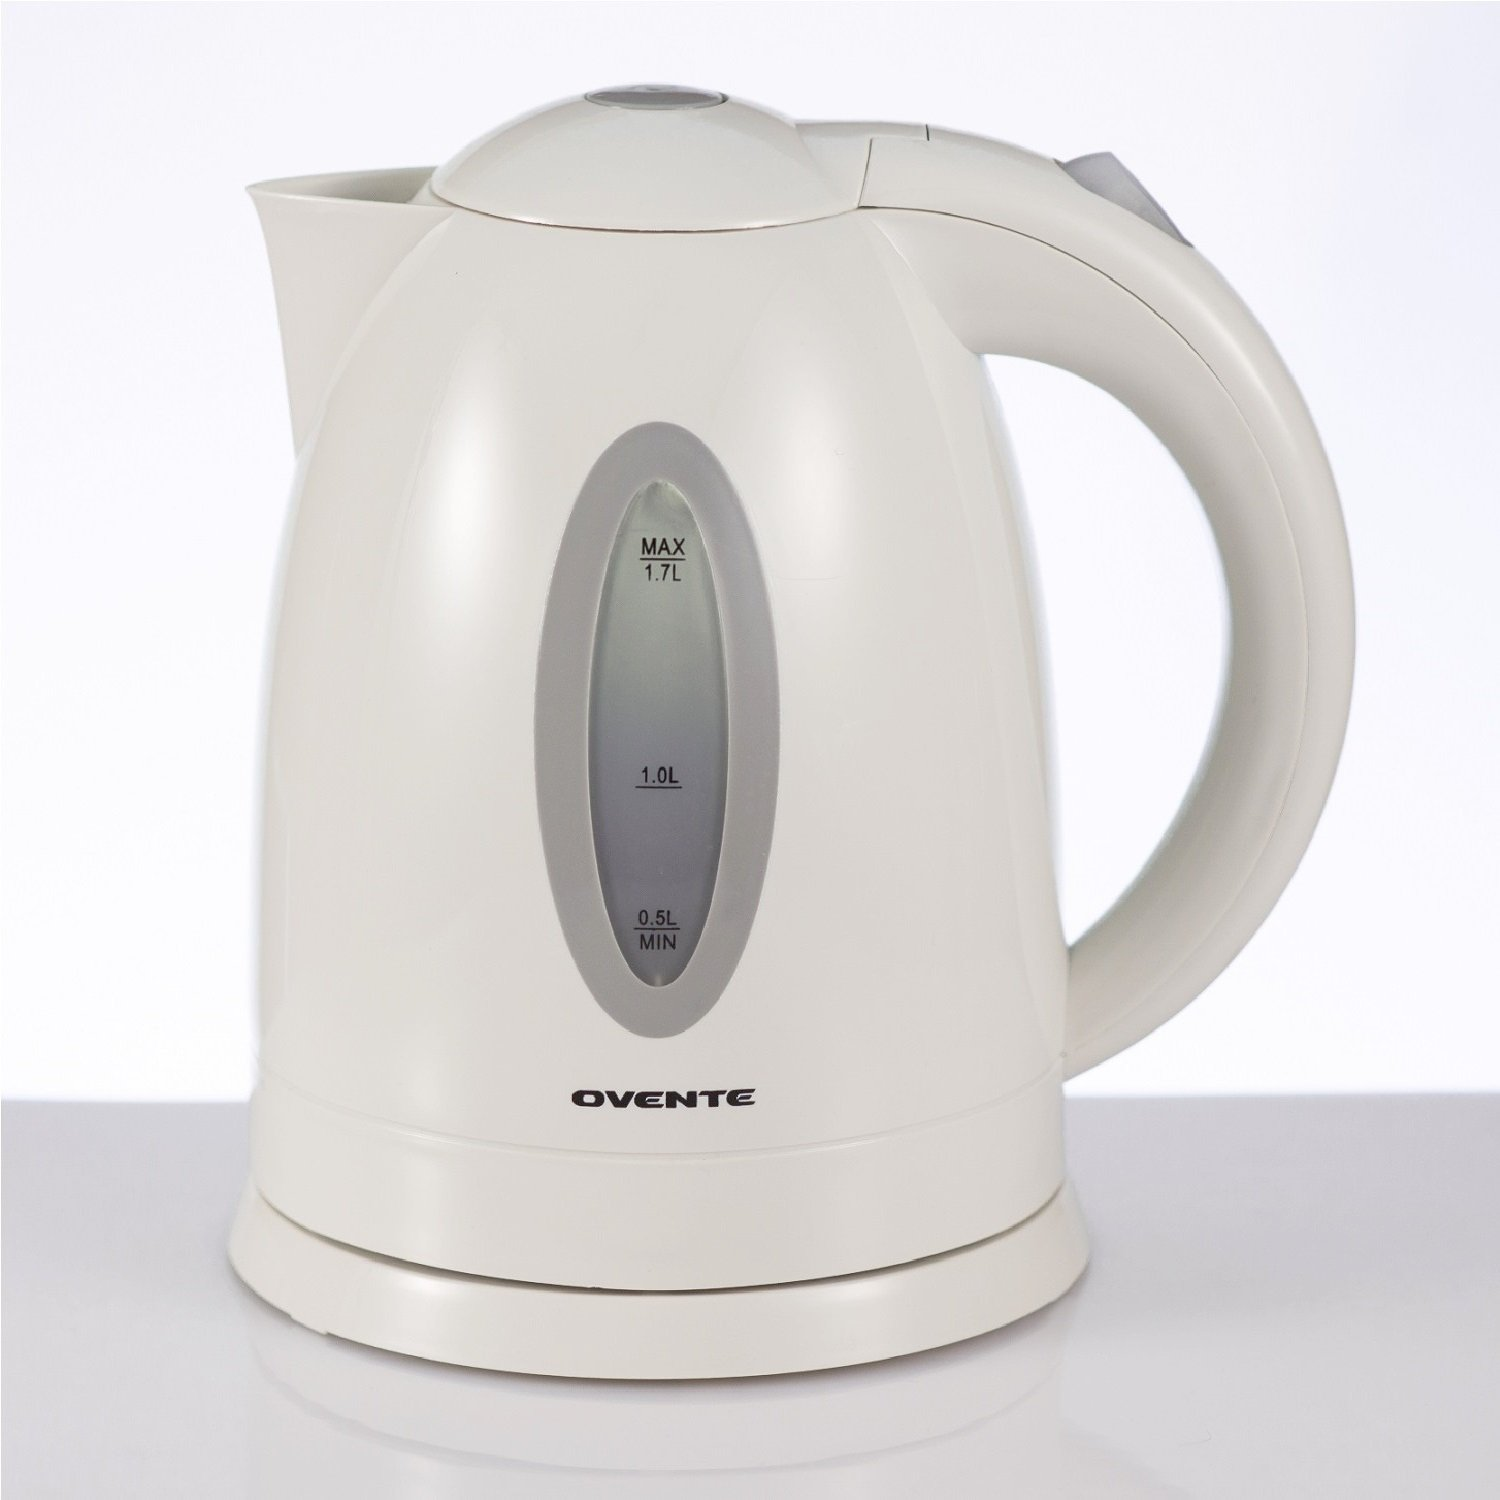 Ovente 1.7L BPA-Free Electric Kettle, Fast Heating Cordless Water Boiler with Auto Shut-Off and Boil-Dry Protection, LED Light Indicator, White (KP72W) by Ovente (Image #1)